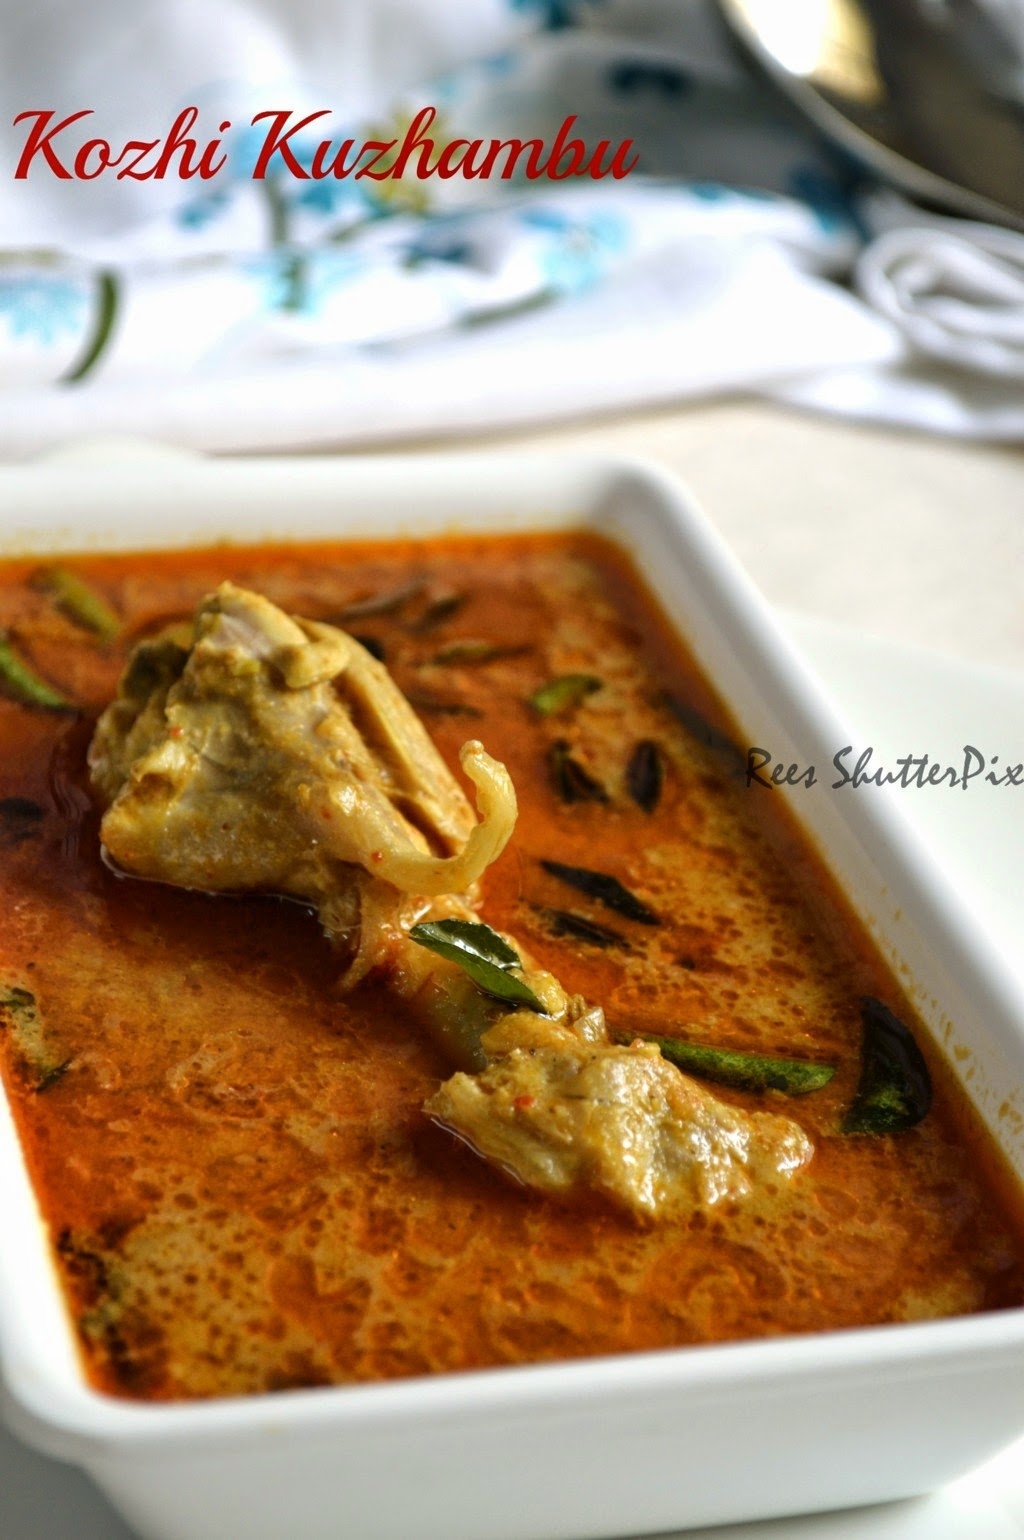 ,how to make chicken kuzhambu,kozhi kuzhambu,kozhi kuzhambu chettinad,chettinad style chicken kuzhambu,step by step chicken kuzhambu recipe